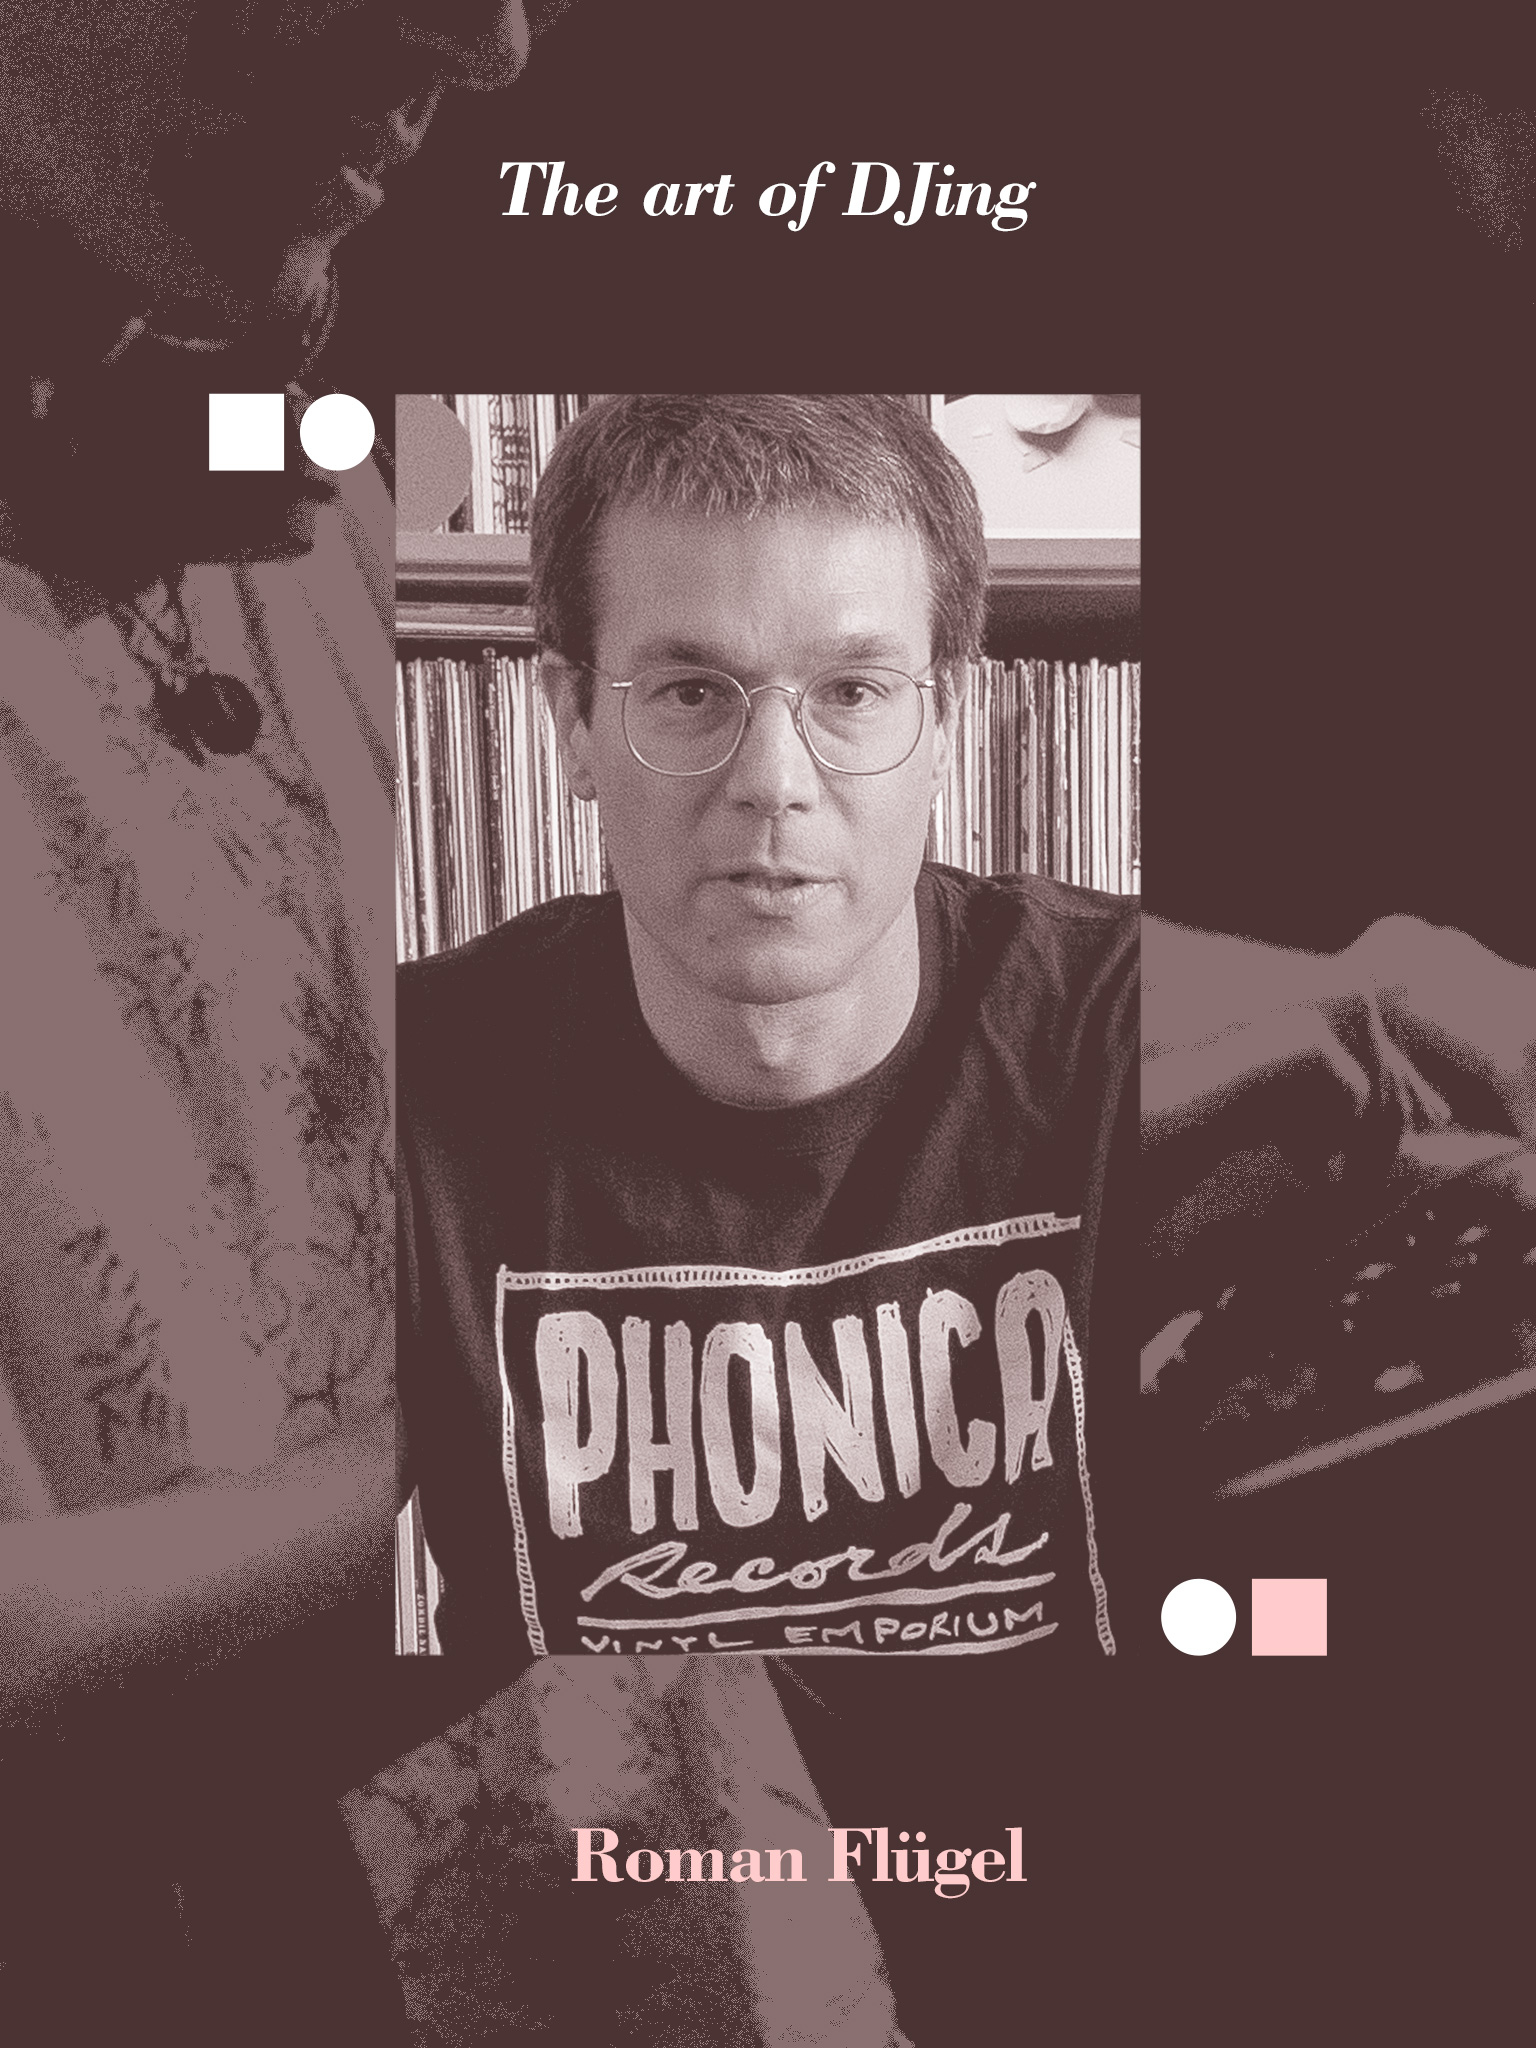 c48c8caf6a The surreal touch that colors Flügel's music extends to his masterful DJ  sets. Speaking to Matt Unicomb, he reflects on his decades behind the decks.